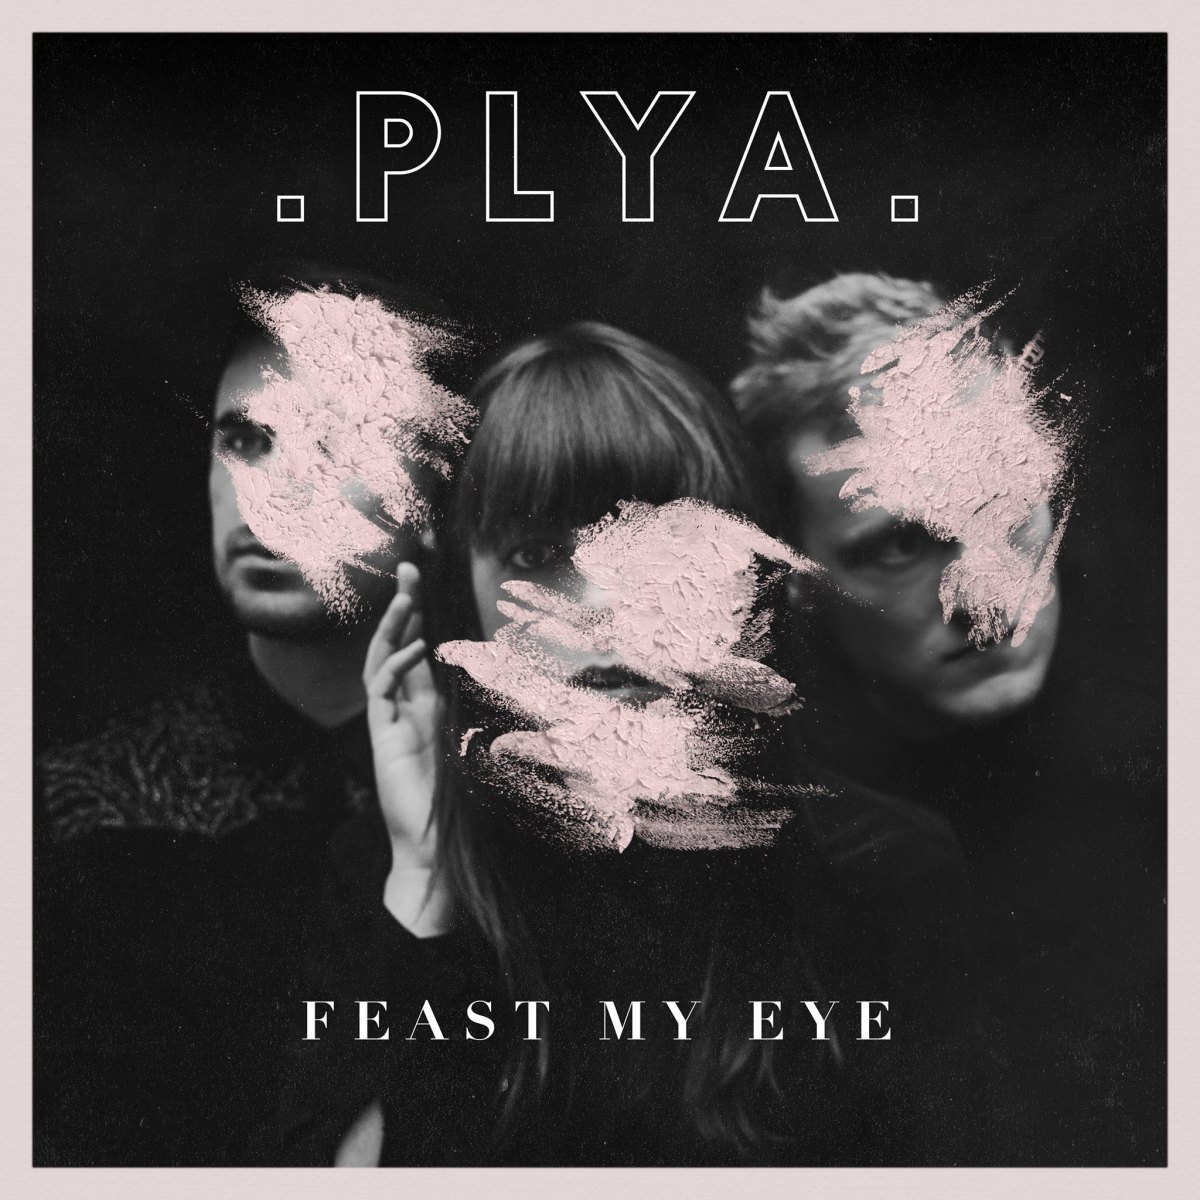 PLYA's 'Feast My Eye' is a Story of Betrayal and Revenge